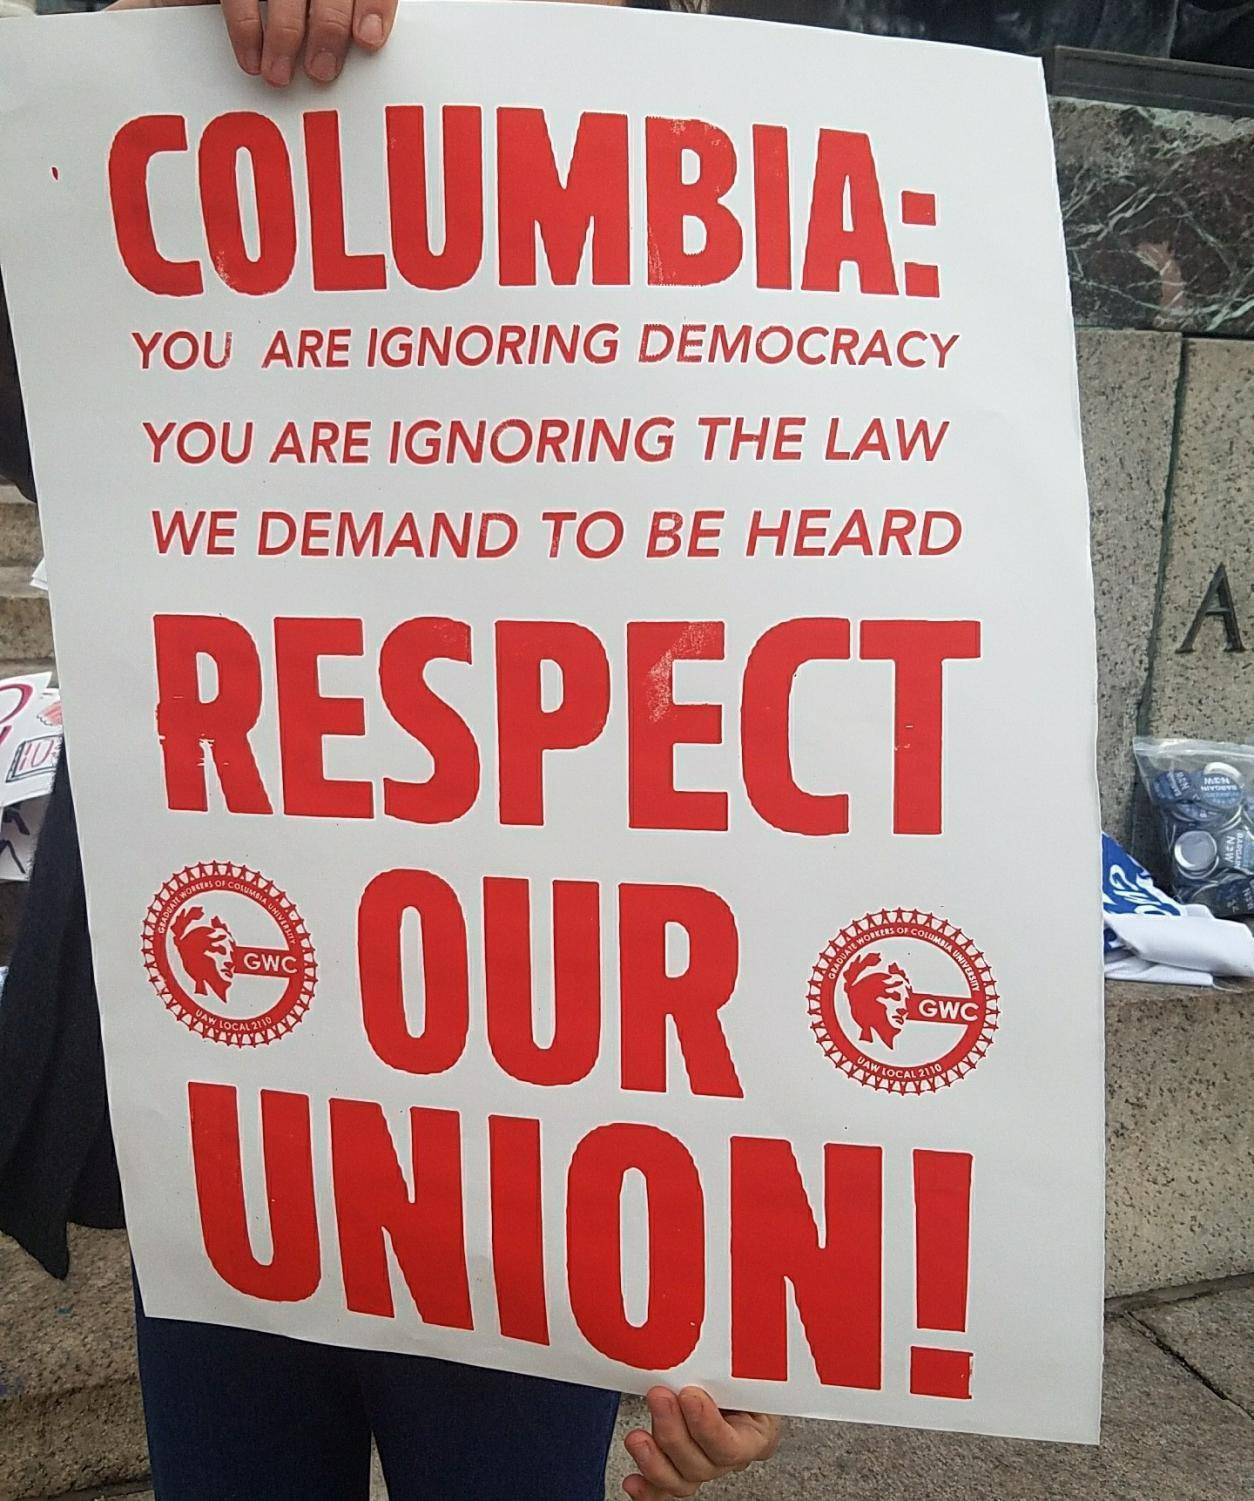 NYU's GSOC is showing support for Columbia University's graduate student union.